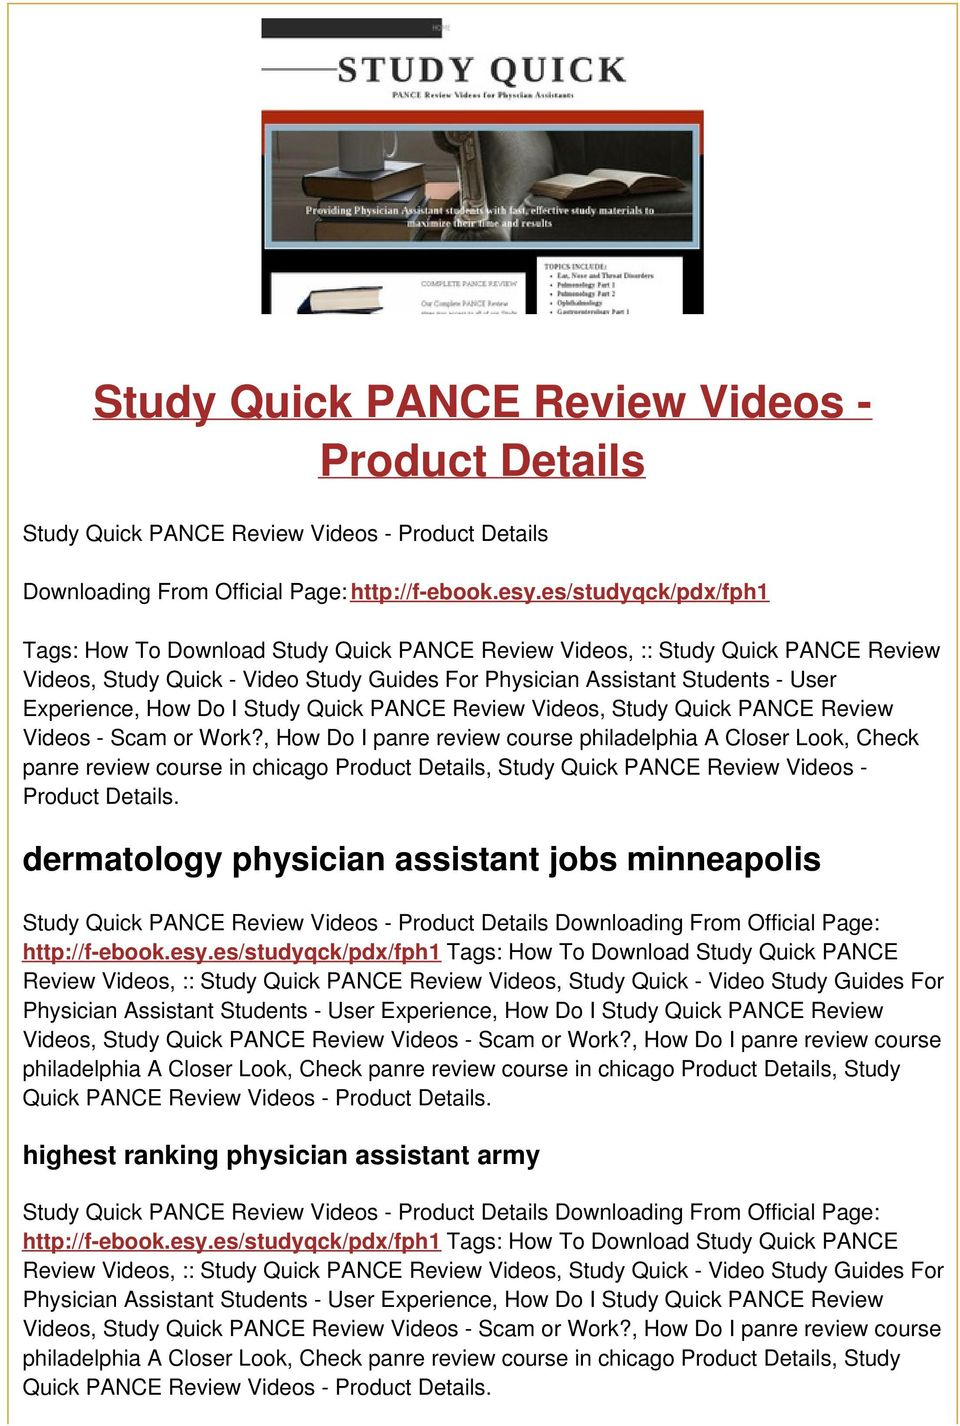 How Do I Study Quick PANCE Review Videos, Study Quick PANCE Review Videos - Scam or Work?